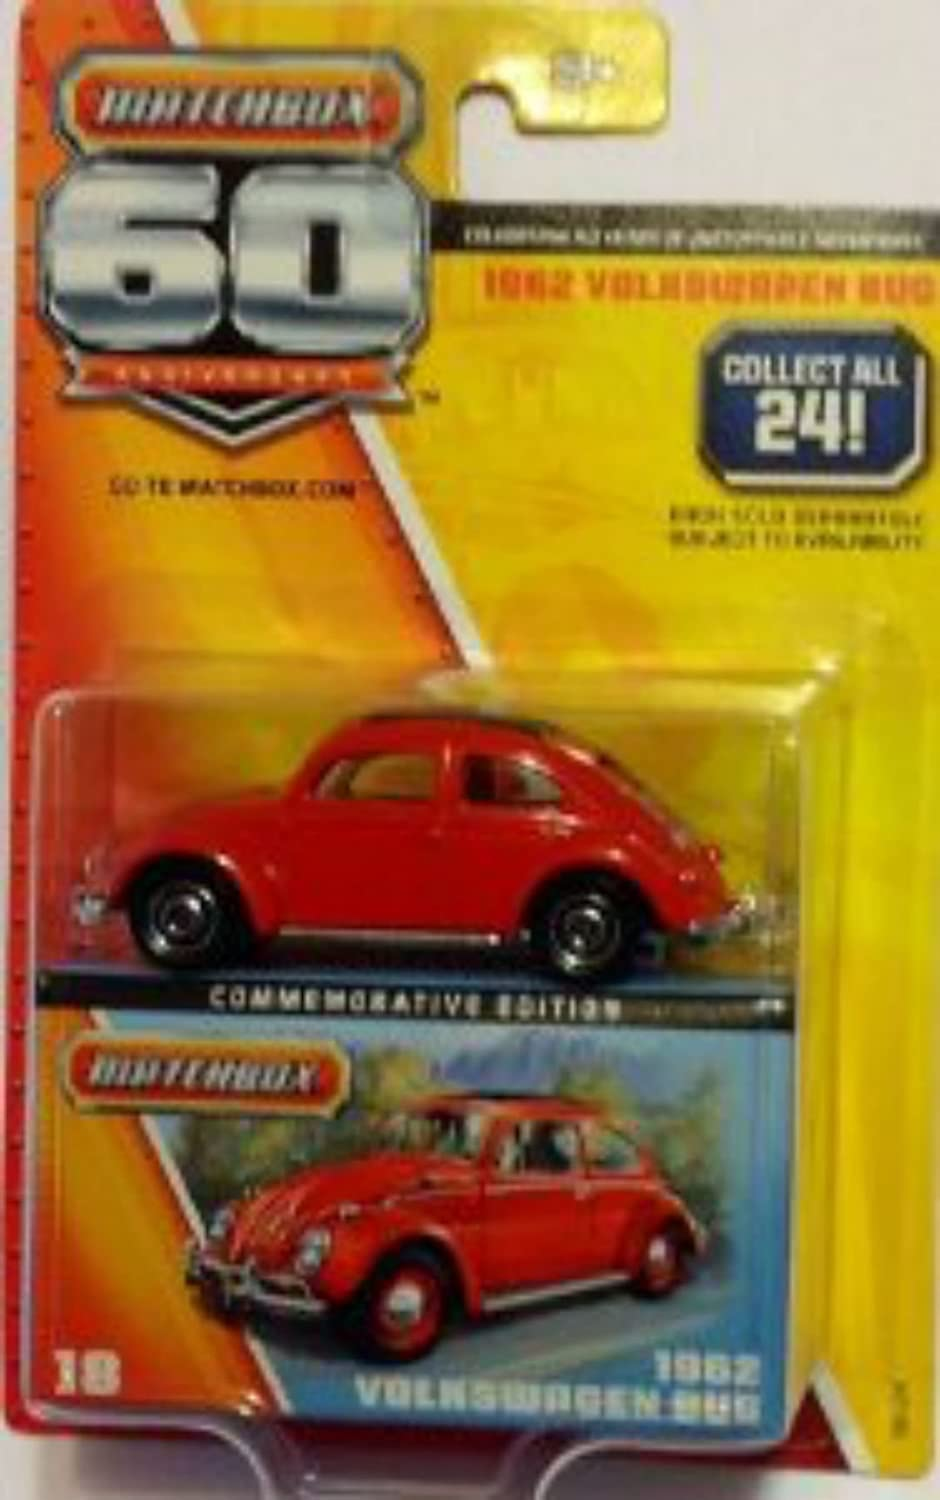 Matchbox 60th Anniversary 1962 Volkswagon Bug by Mattel